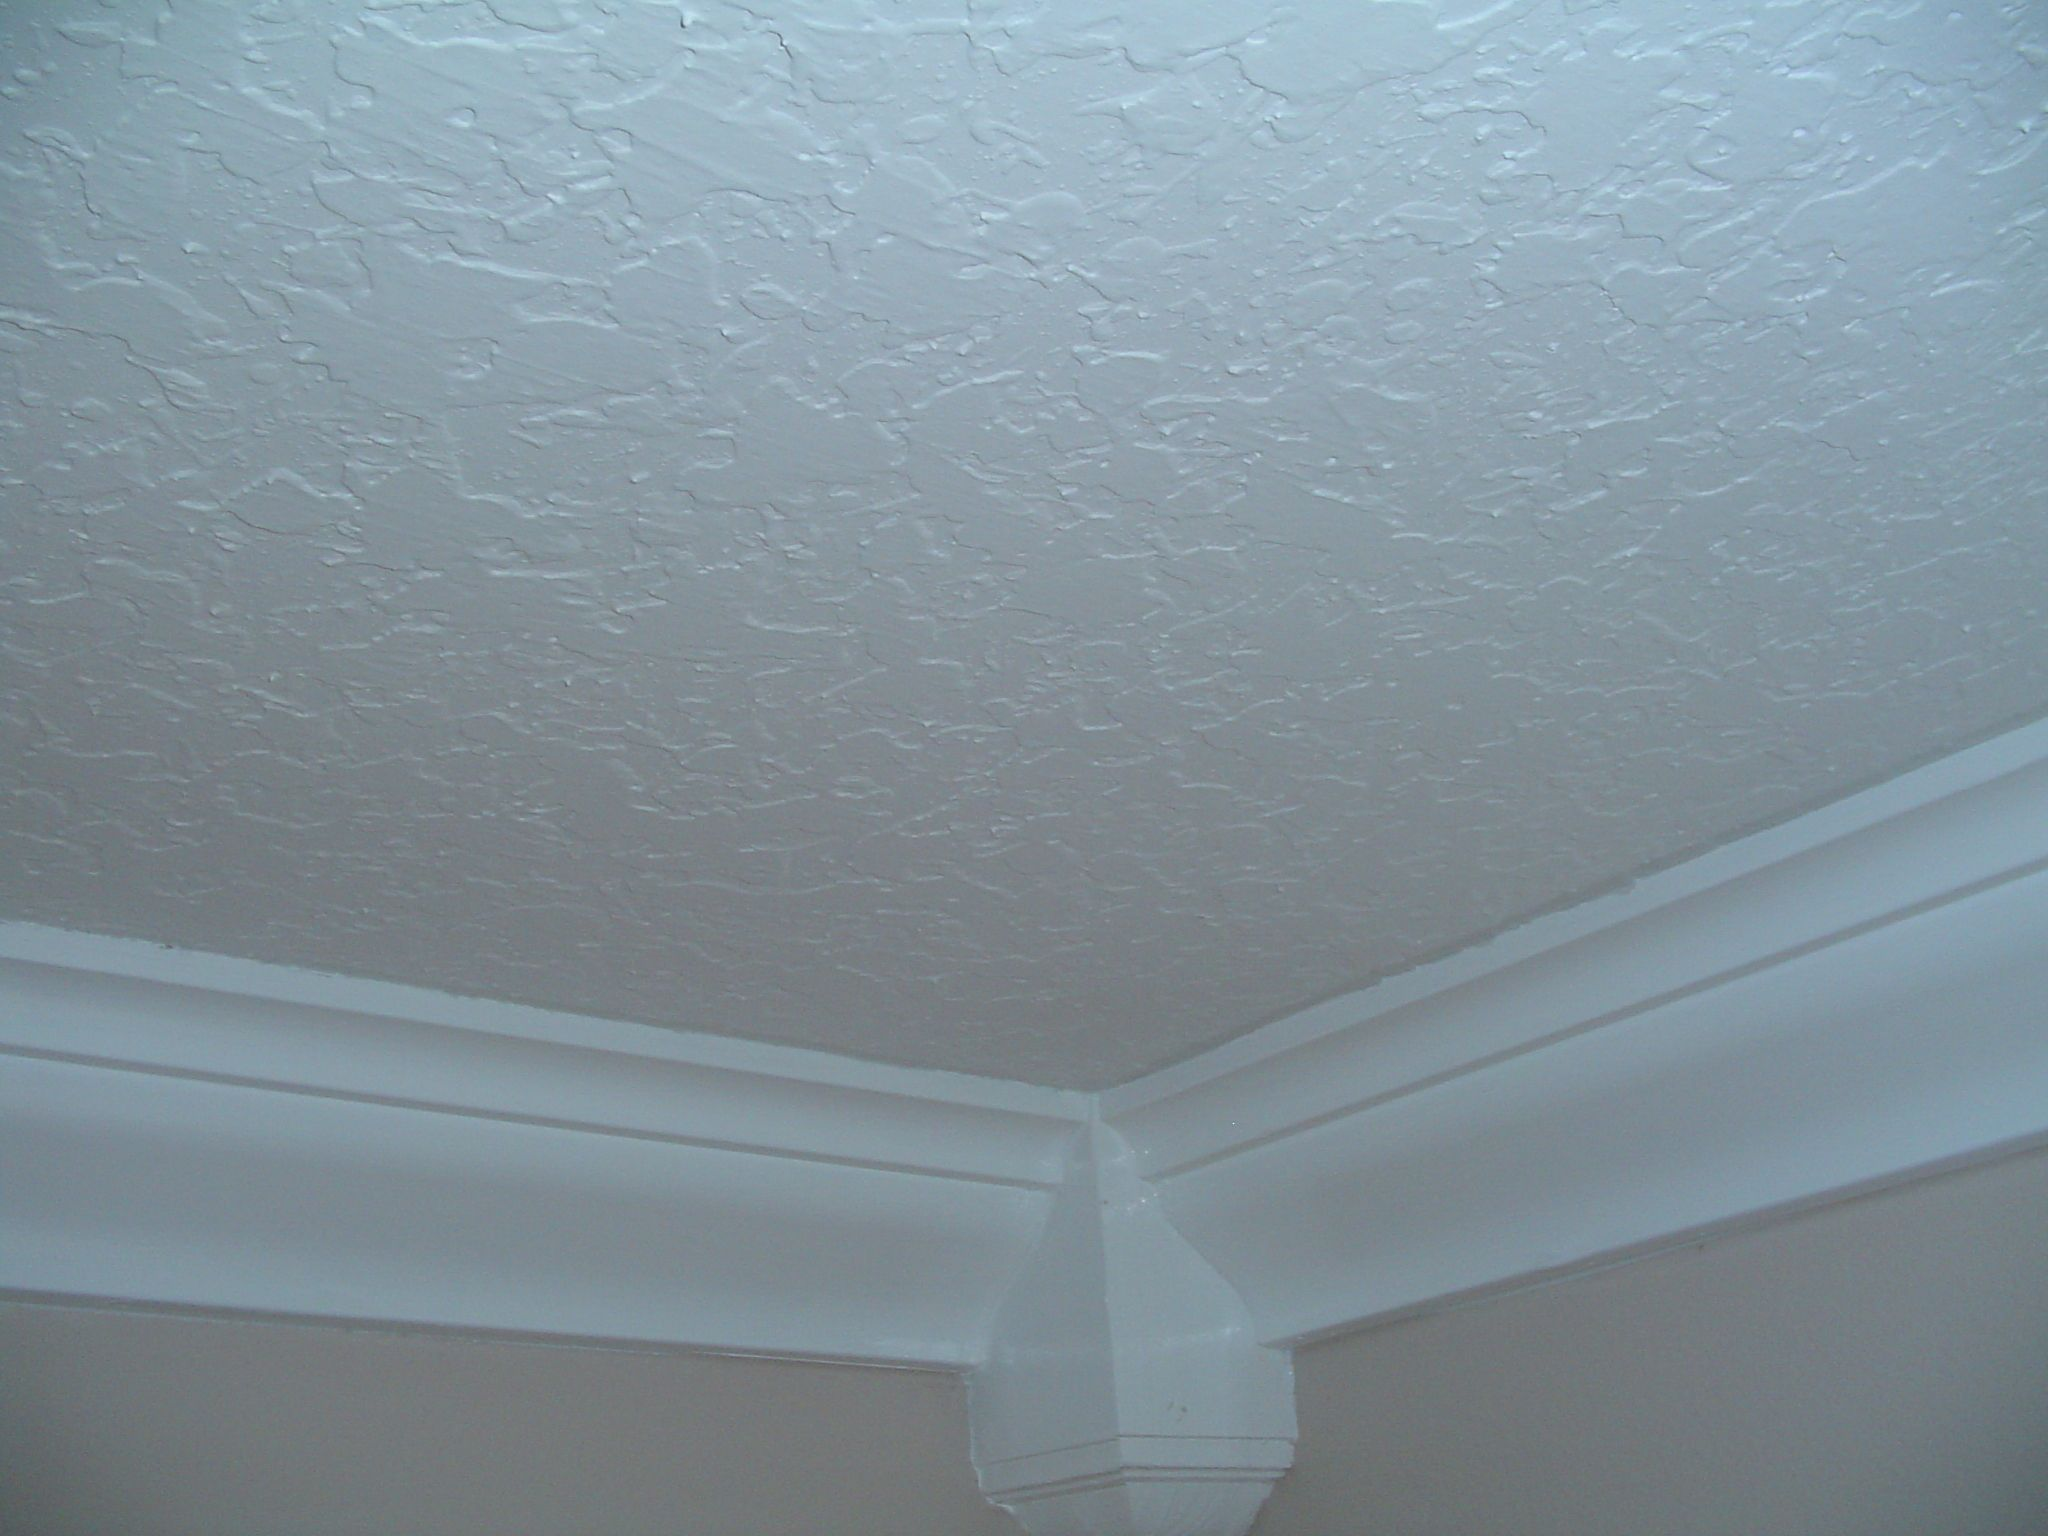 Knockdown Ceiling Texture Spanish Lace Or Mediterranean Texture